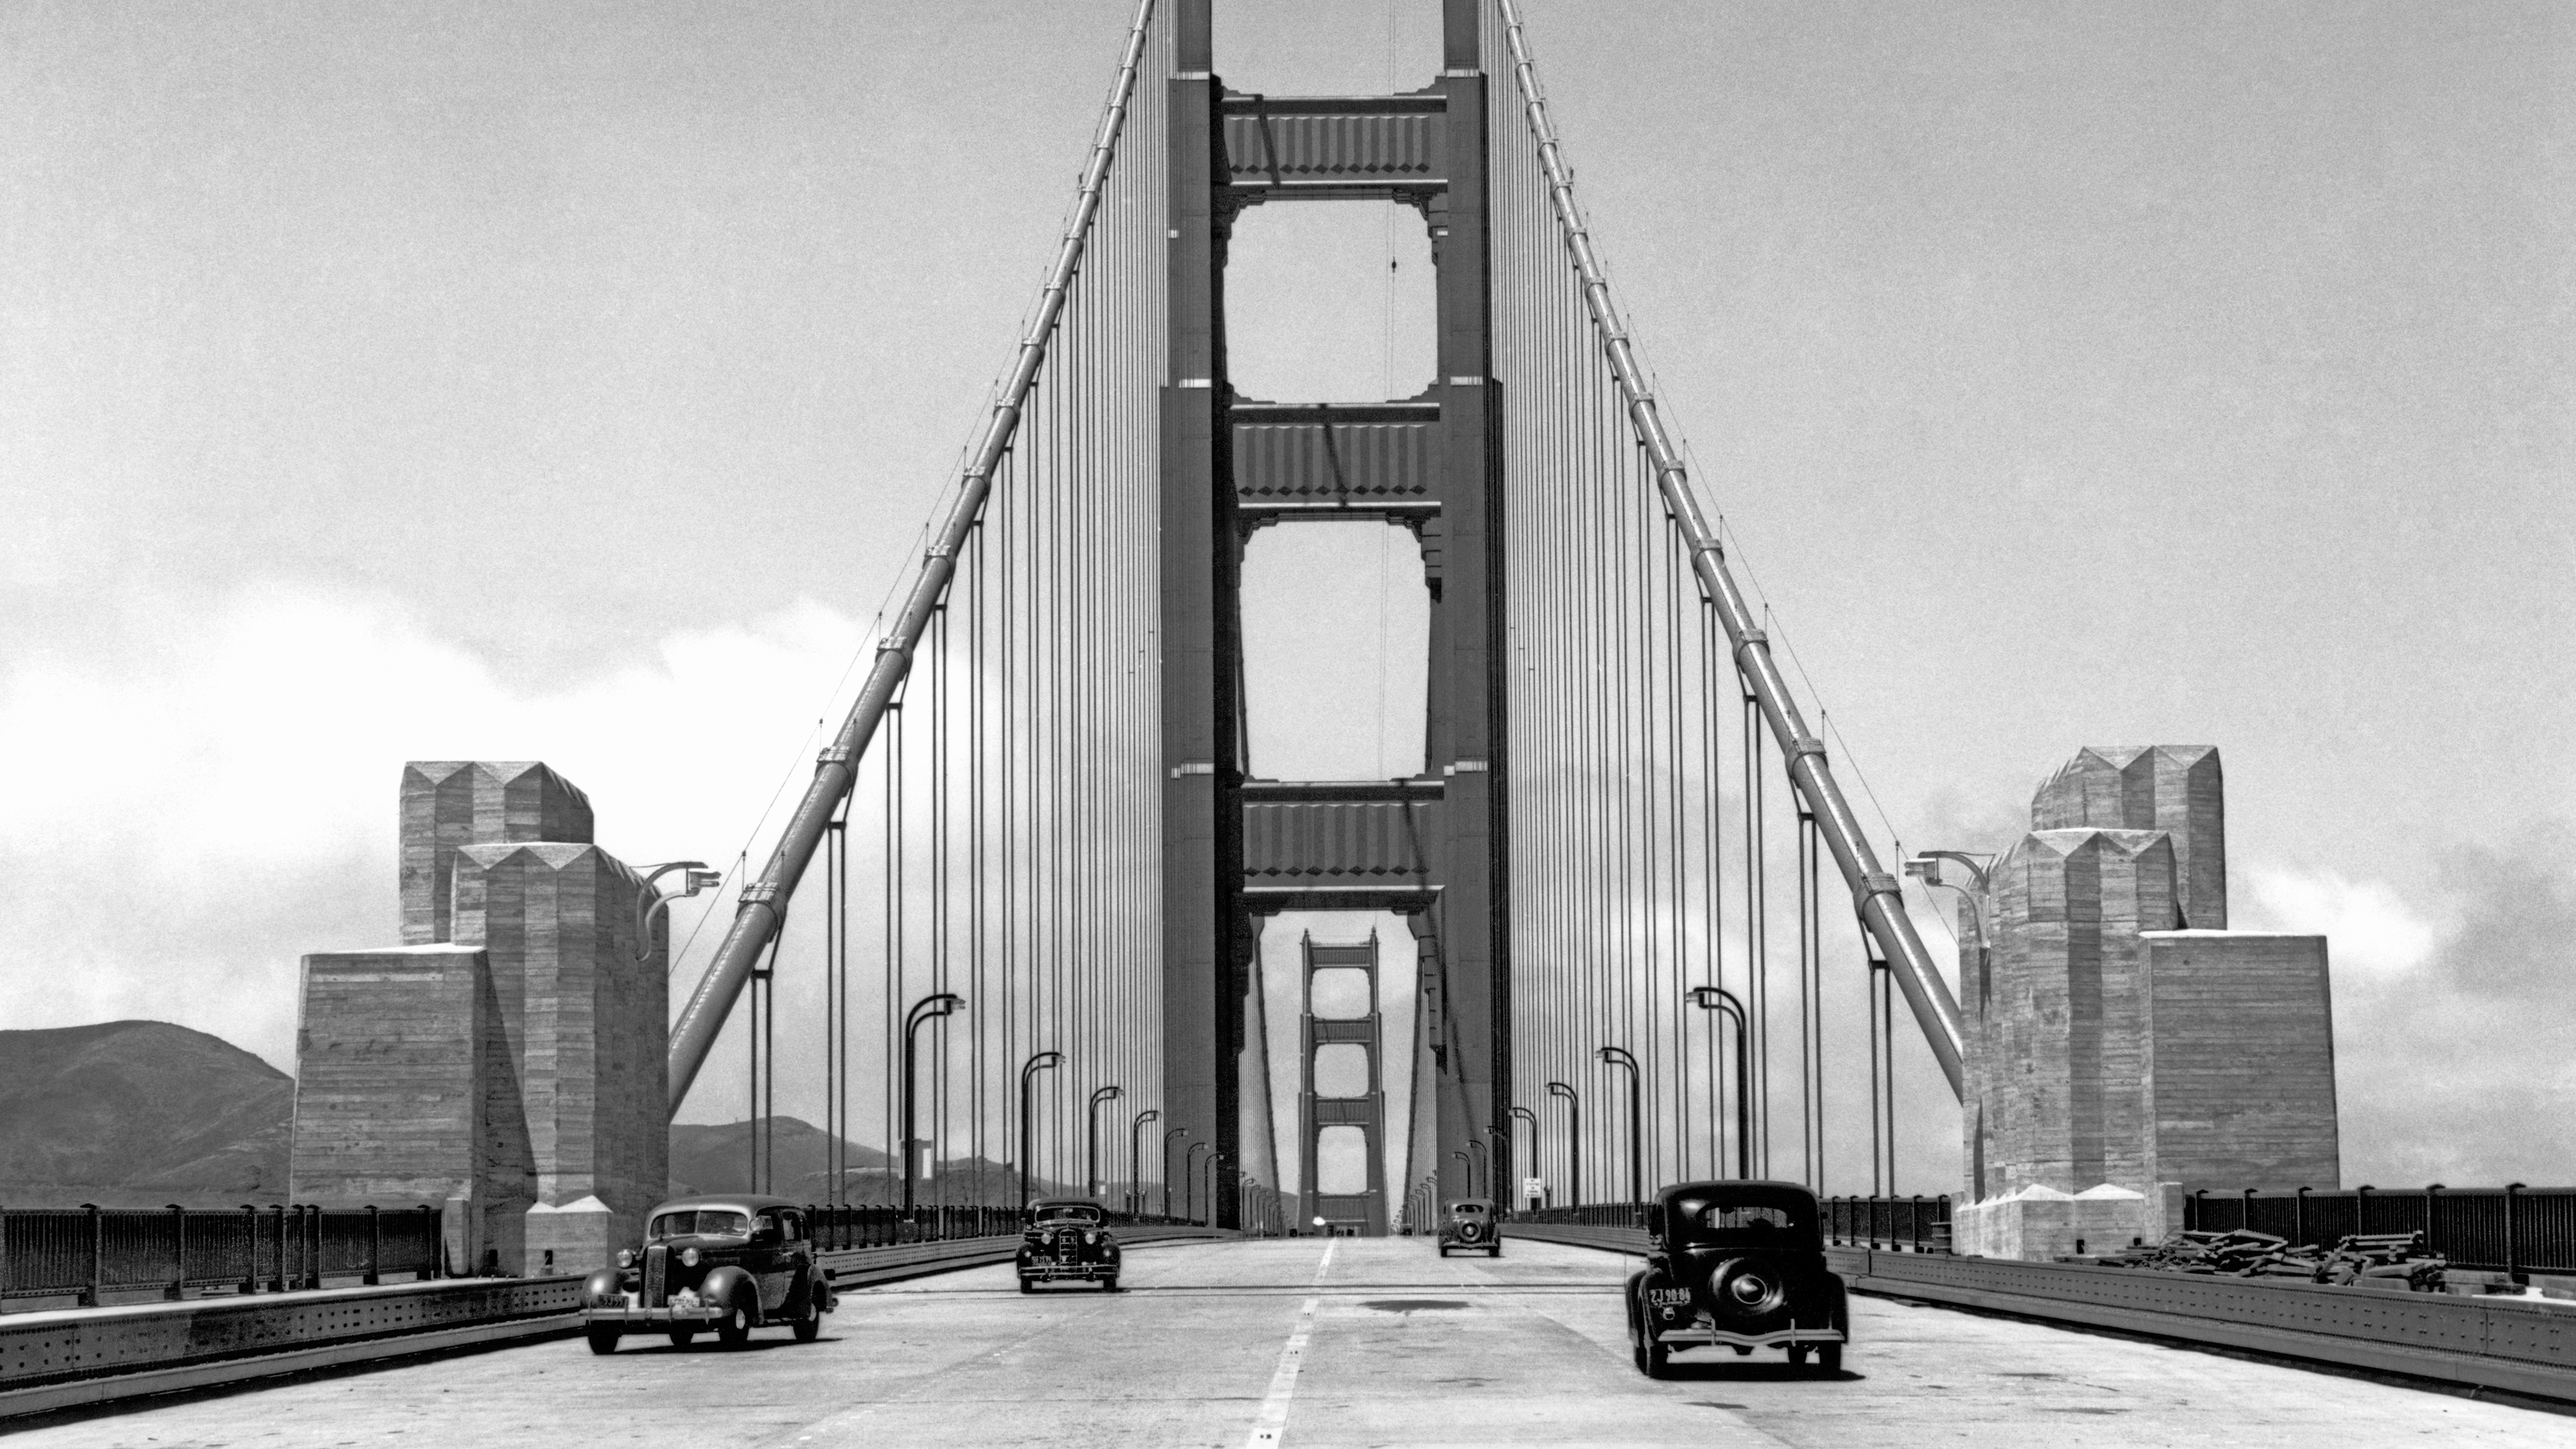 golden gate black single women The navy suggested that the bridge be painted in black and yellow  the golden gate bridge is painted  looped around the earth's equator in a single.